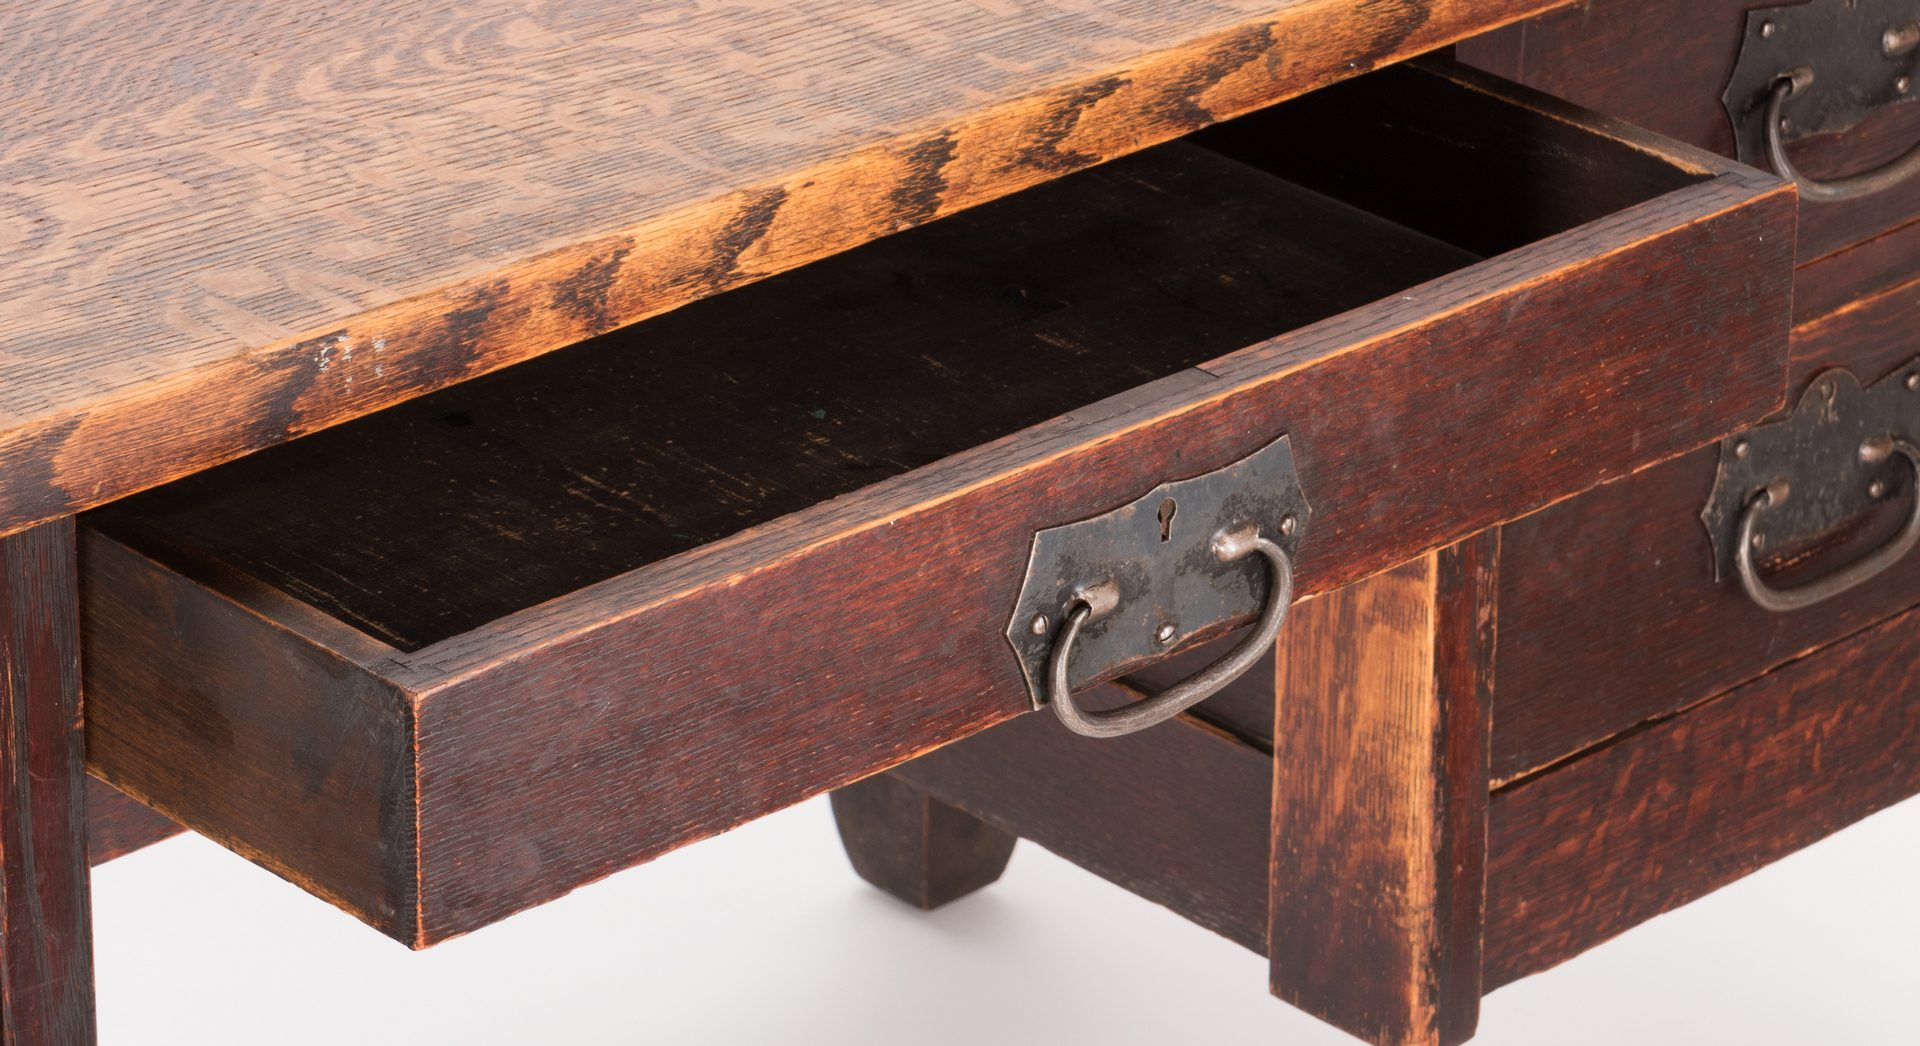 Lot 511: Roycroft Arts & Crafts Oak Desk, c.1905